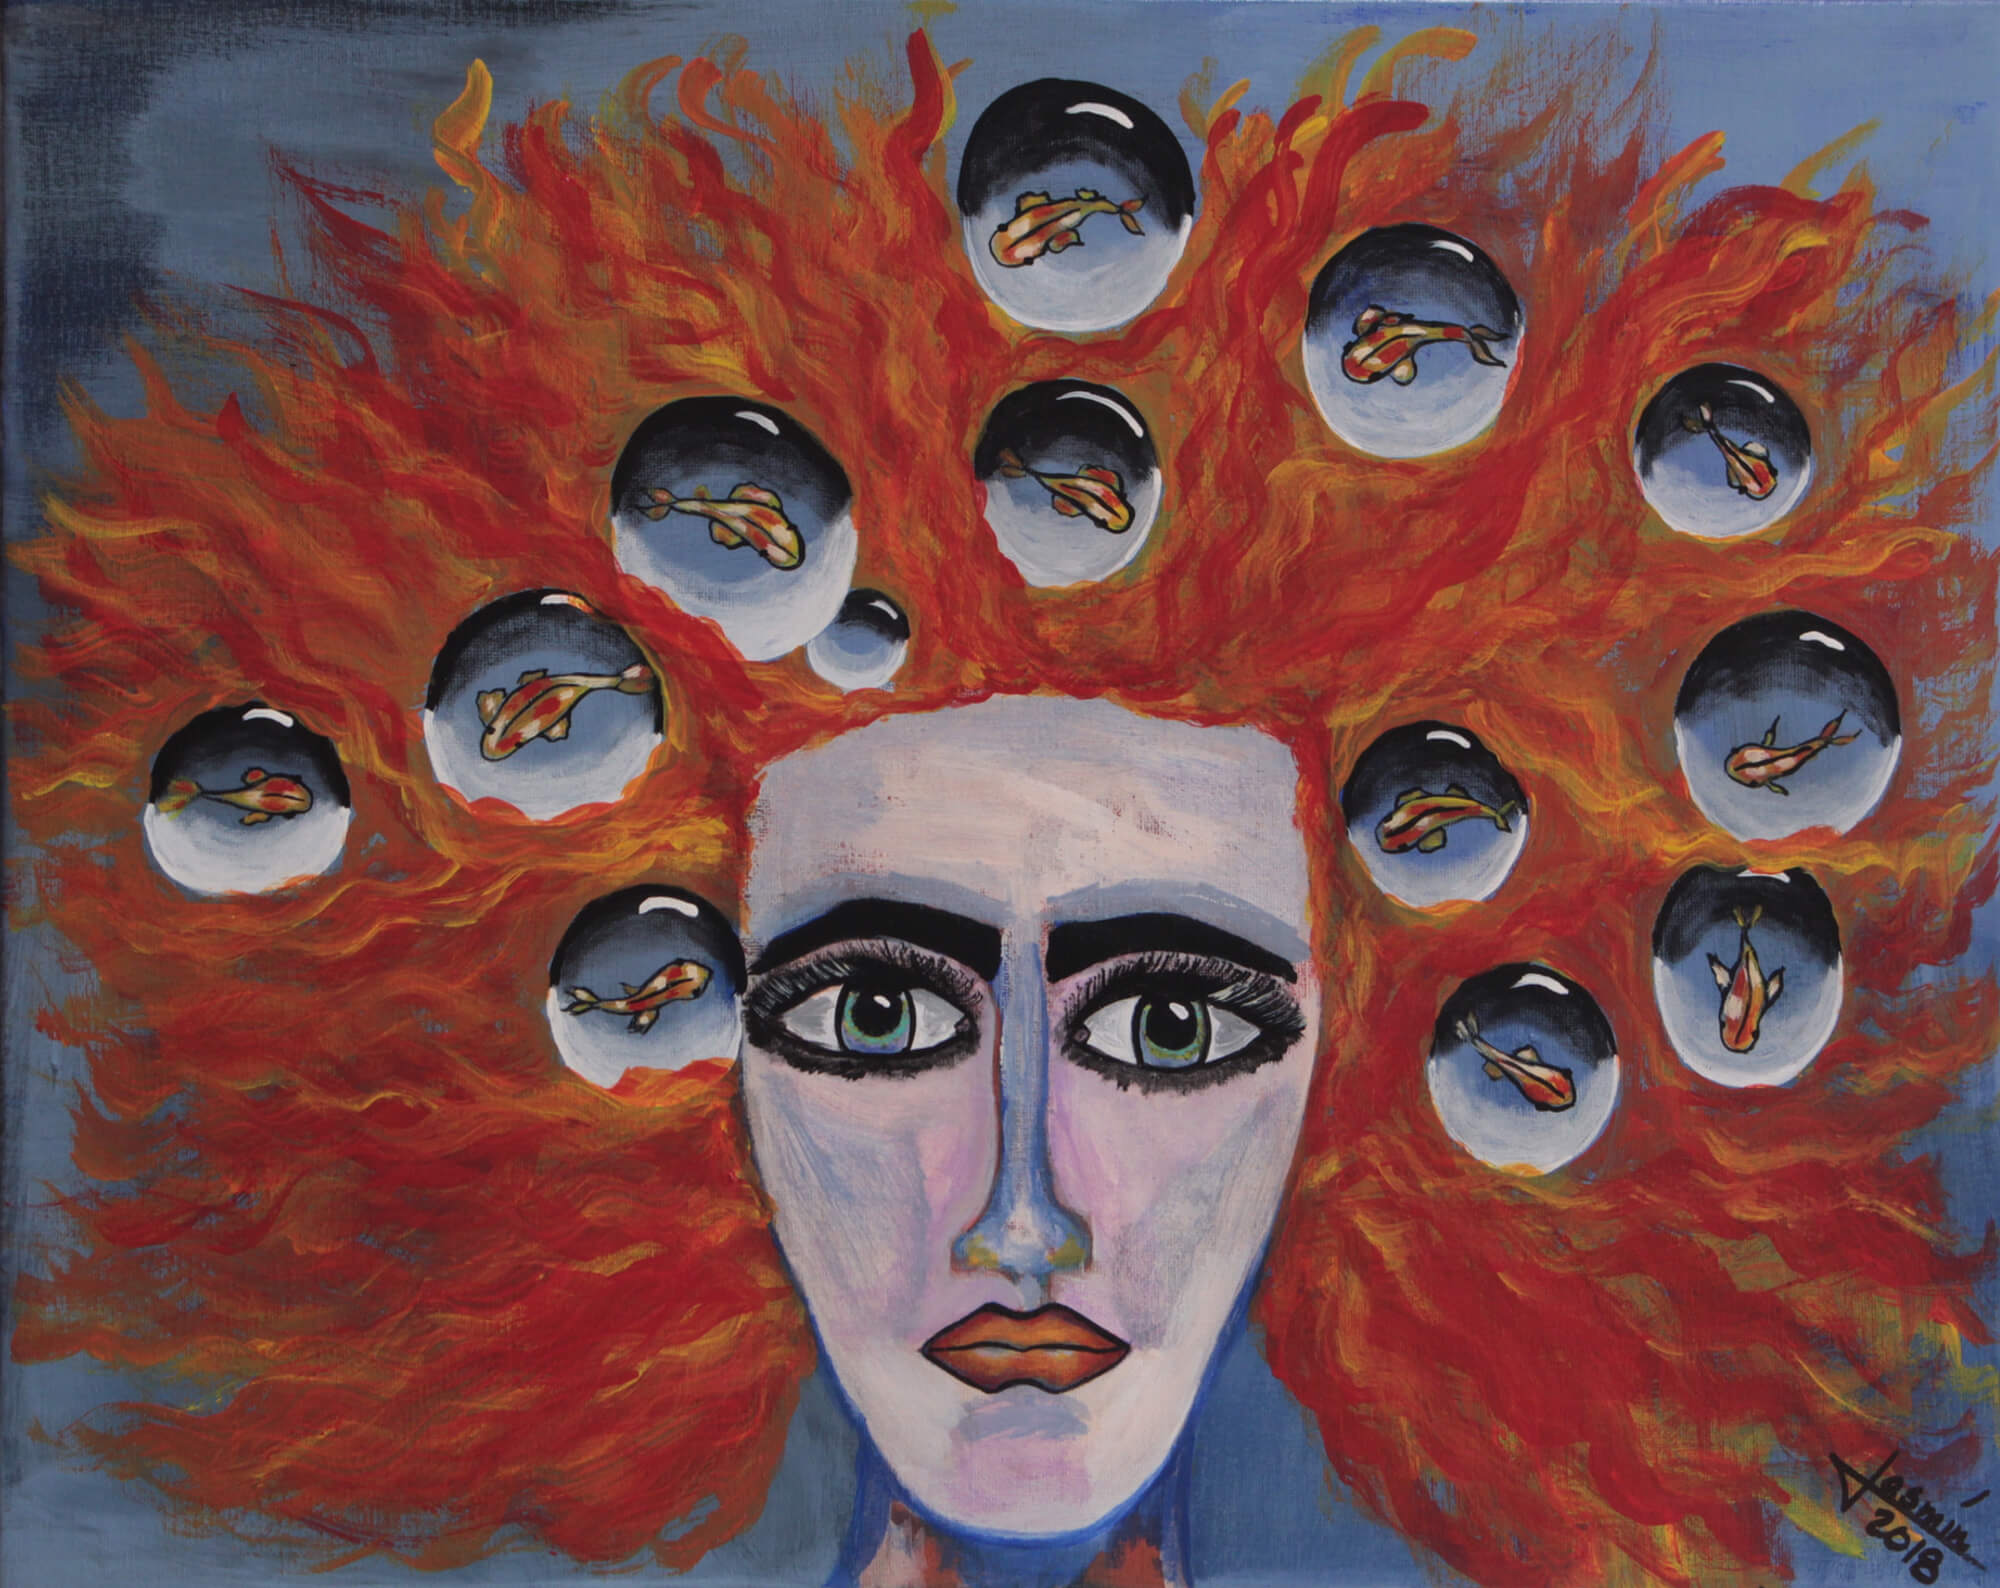 Acrylic painting of red spread hair female head and levitating water bubbles with fish by Jasmín Camacho